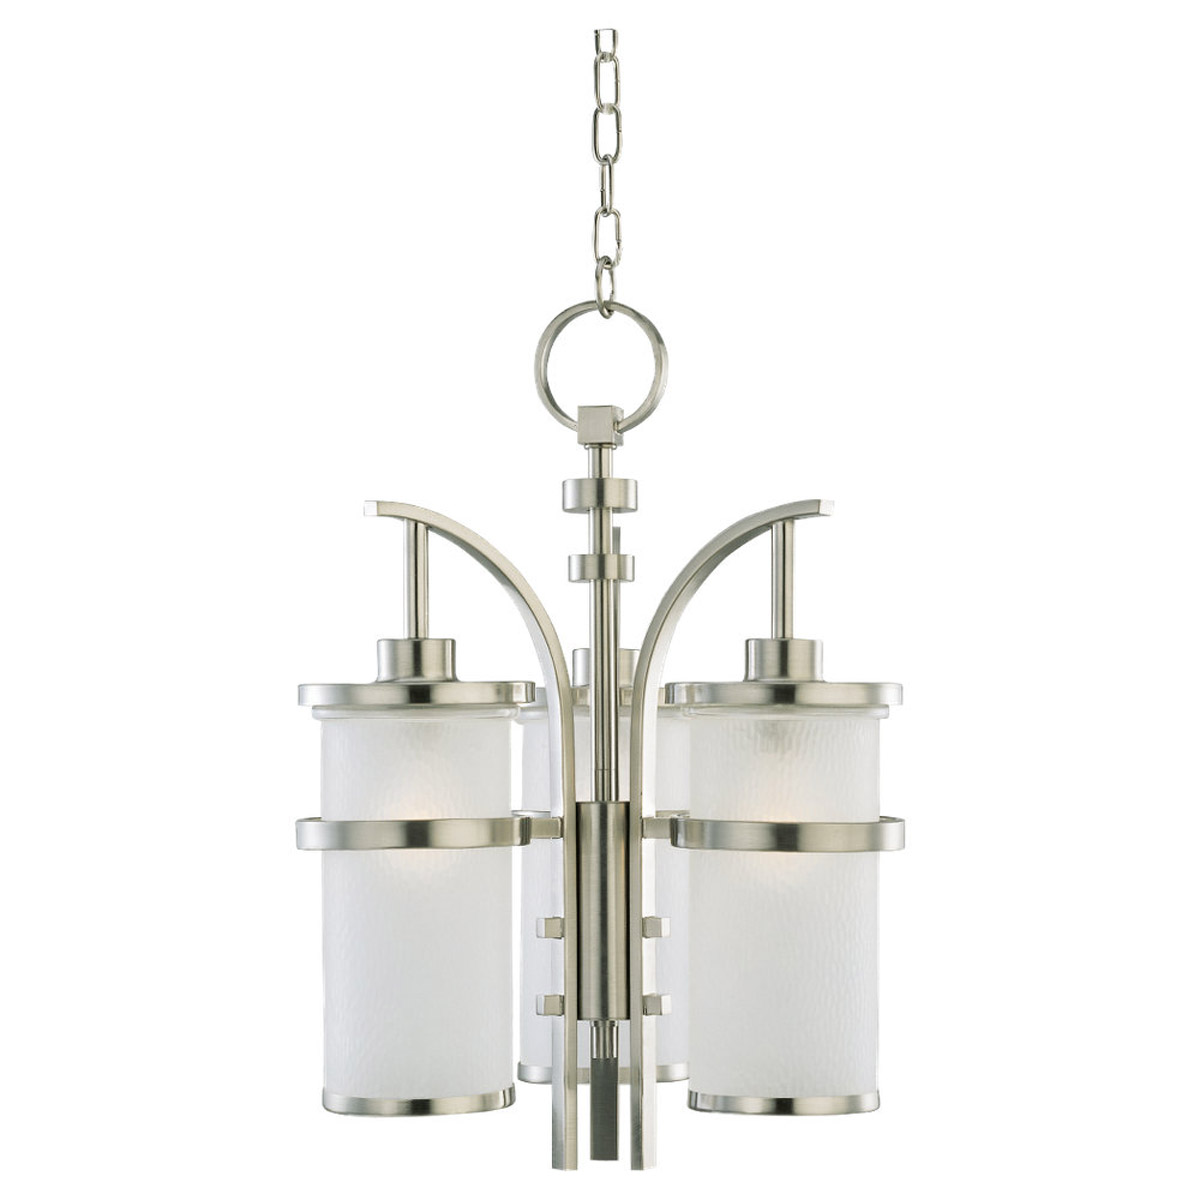 Sea Gull Lighting Eternity 3 Light Outdoor Pendant in Brushed Nickel 60115-962